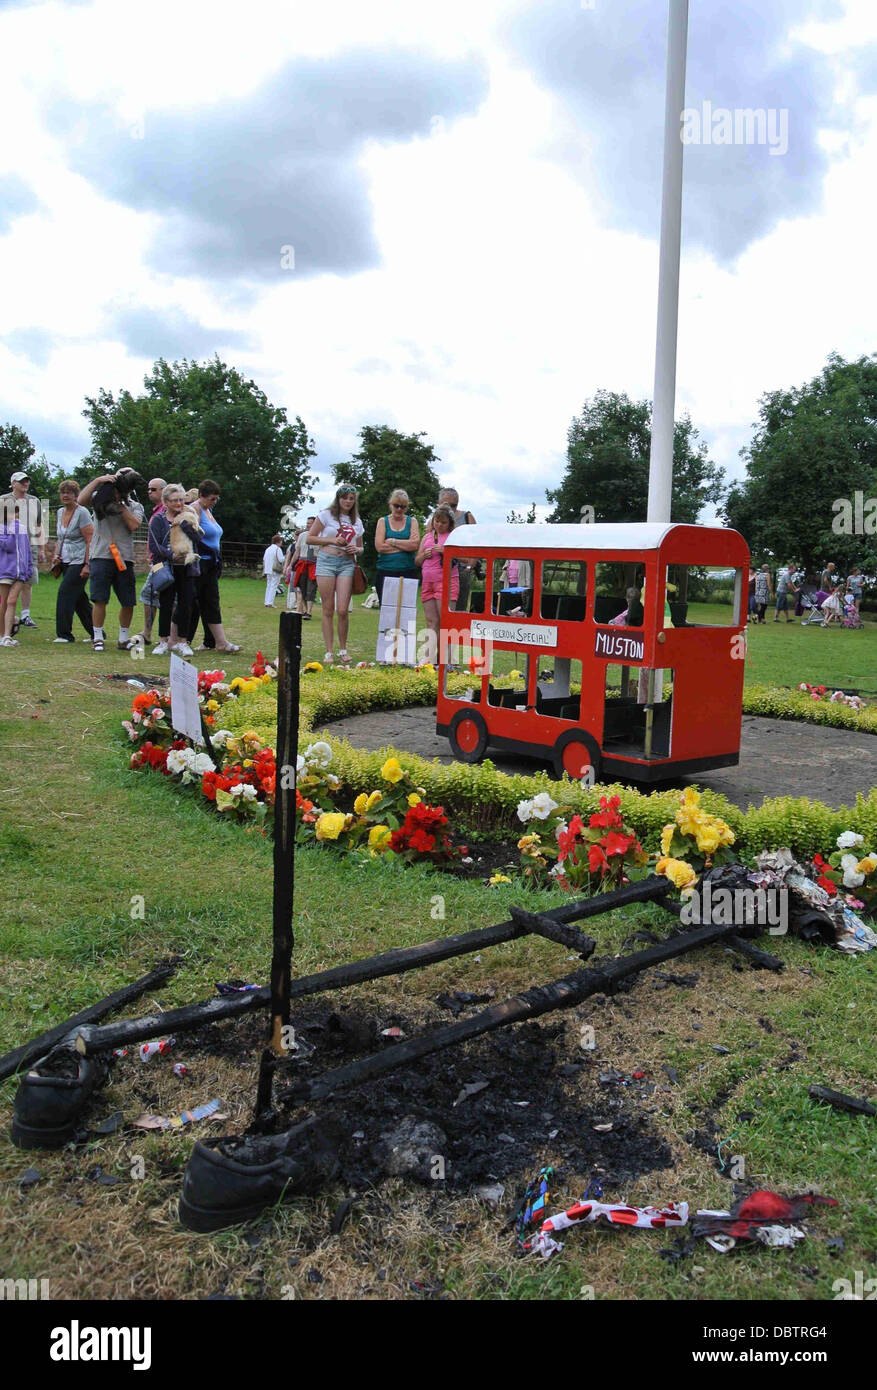 VANDALS SET FIRE TO & DESTROY MUSTON SCARECROW FESTIVAL MUSTON SCARBOROUGH NORTH YORKS SCARBOROUGH ENGLAND 04 - Stock Image